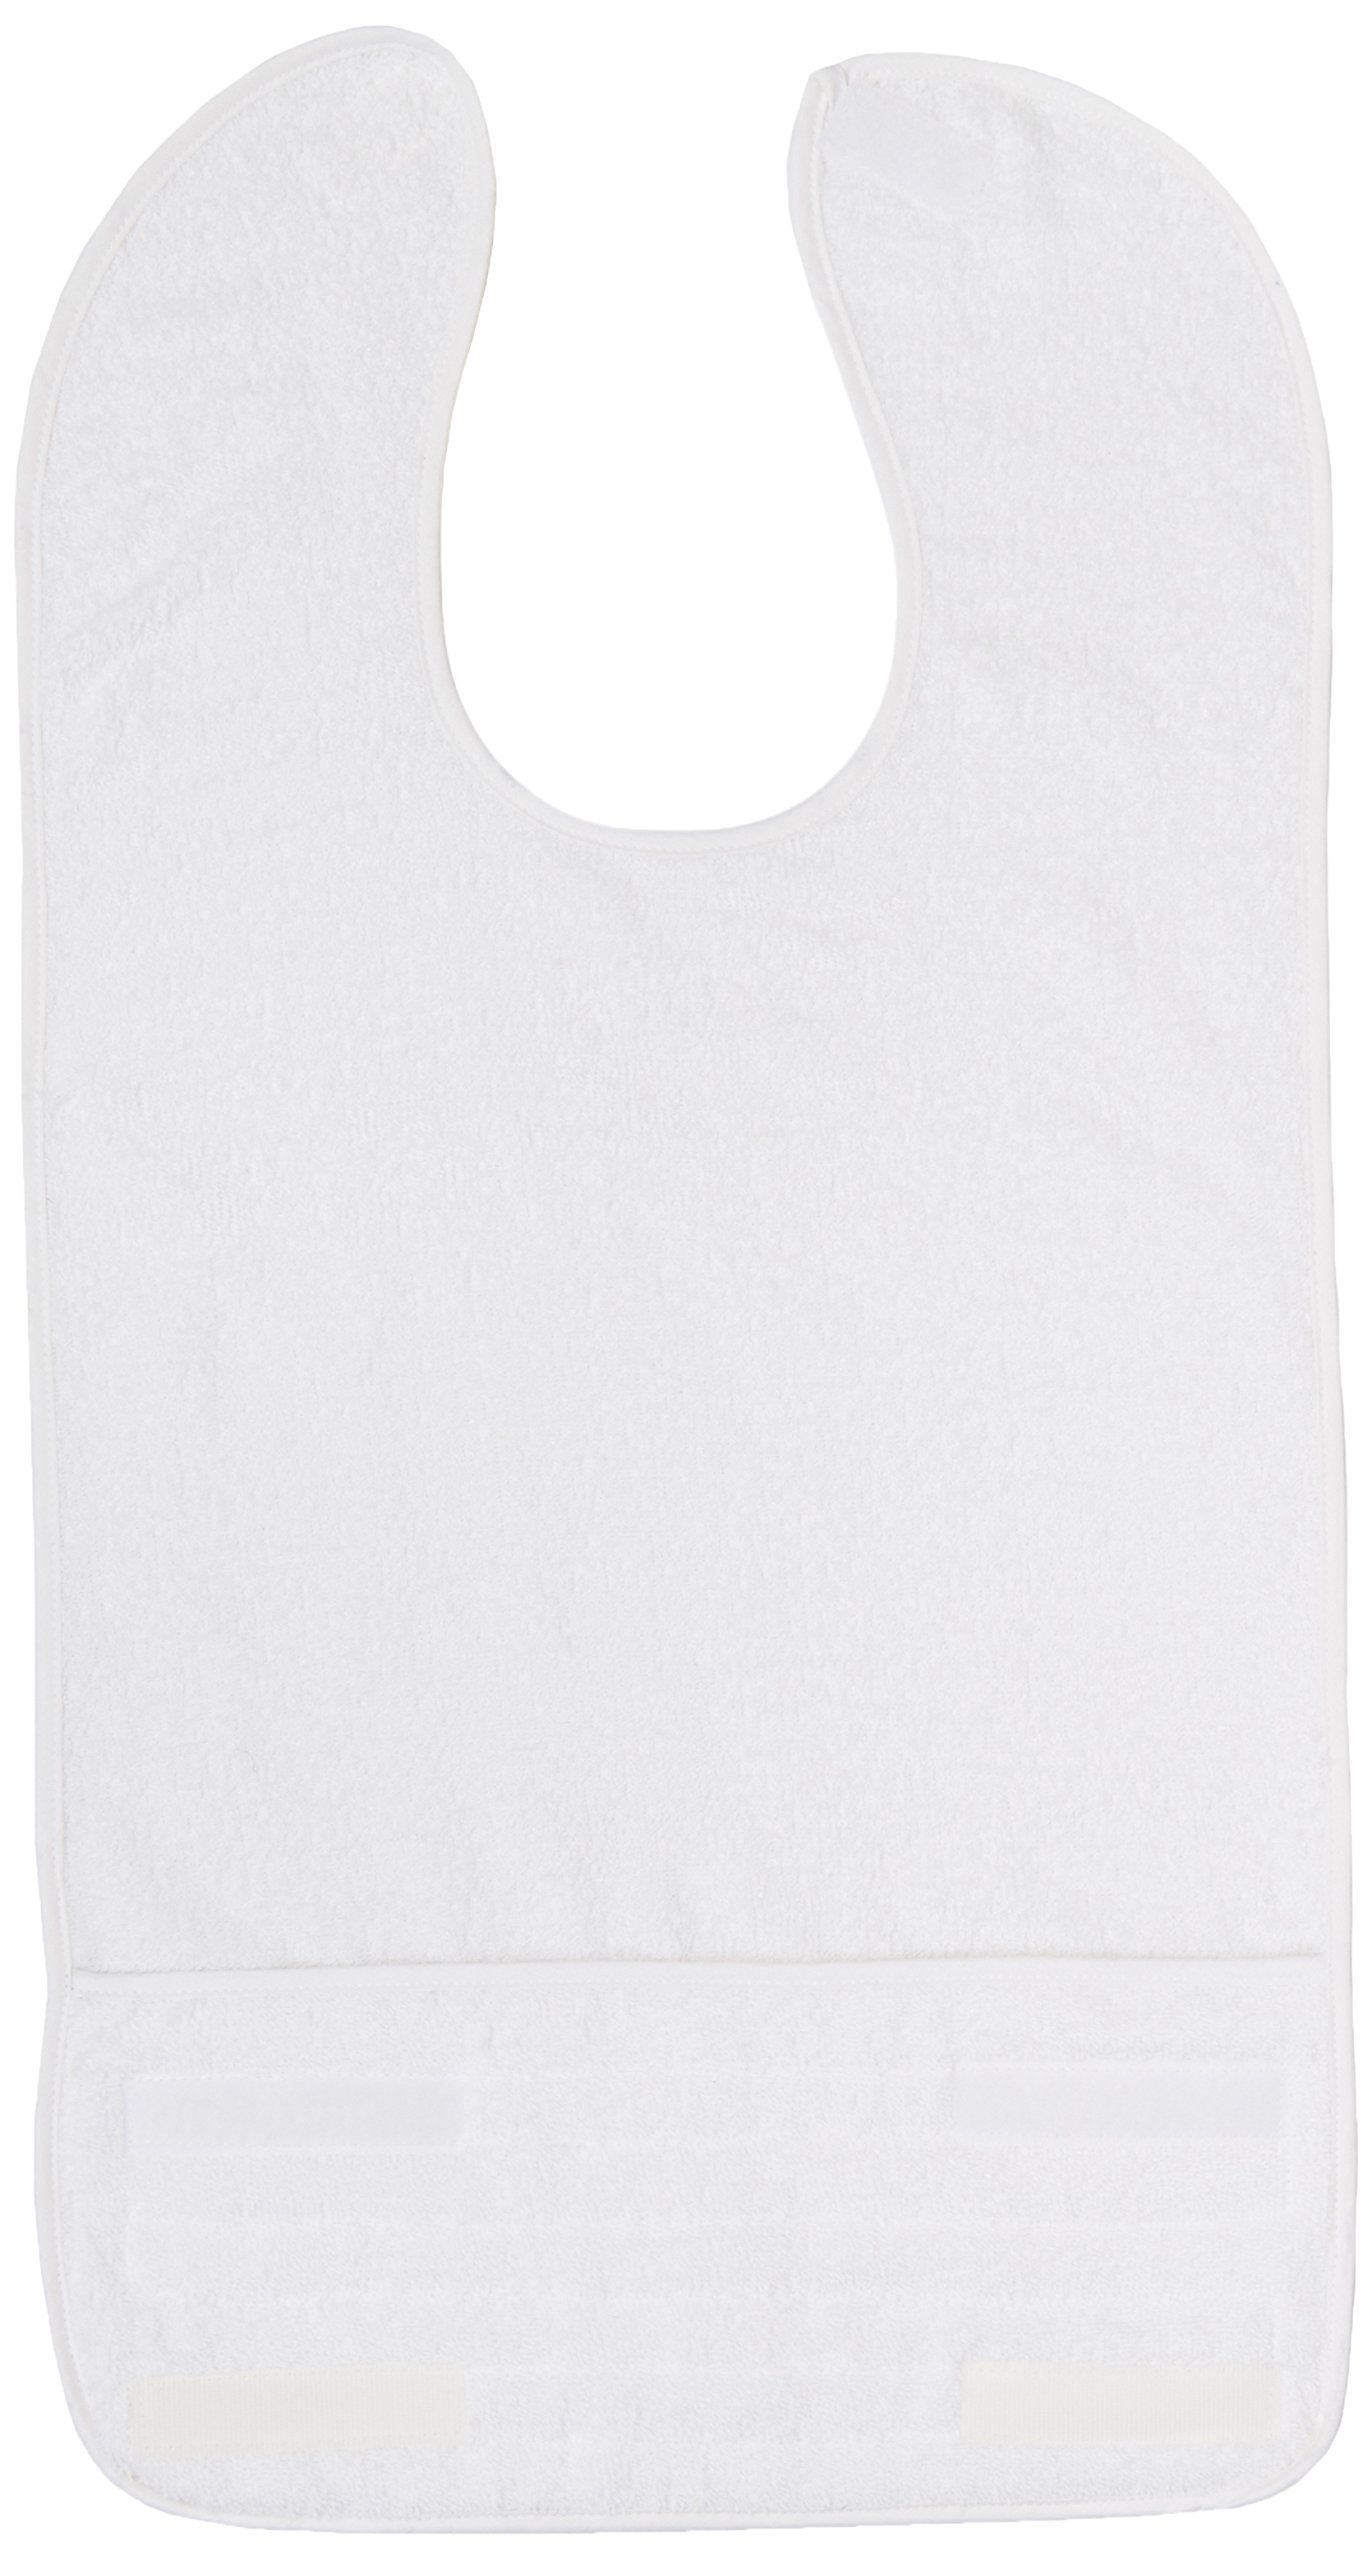 Sammons Preston Terry-Cloth Food Catcher, Pack of 10, White Standard Bib, 14-1/2''W x 15''L, Lightweight Adult Bib Keeps Clothes Clean for Elderly, Disabled, and Messy Eaters, Velcro Strap Secures Bib